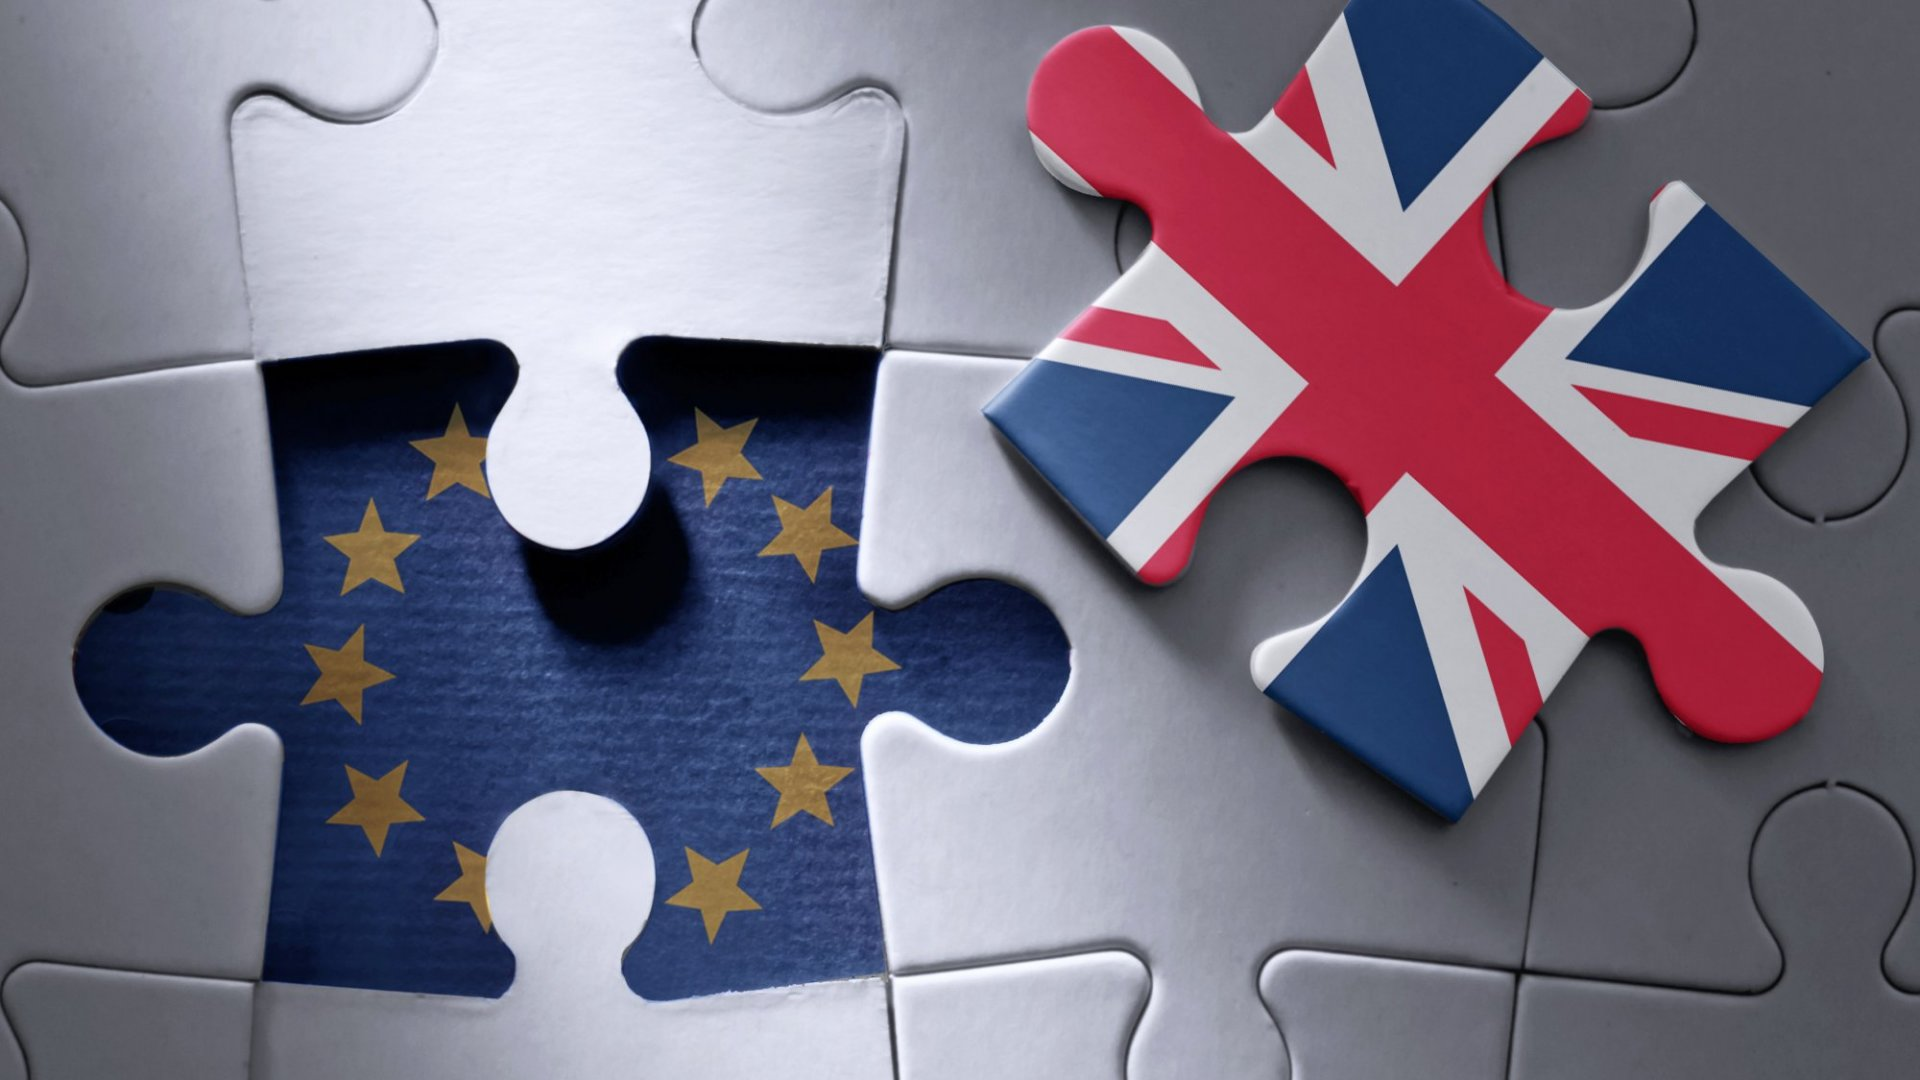 4 Intriguing Sales Tips I Learned From the Brexit Campaign's Success